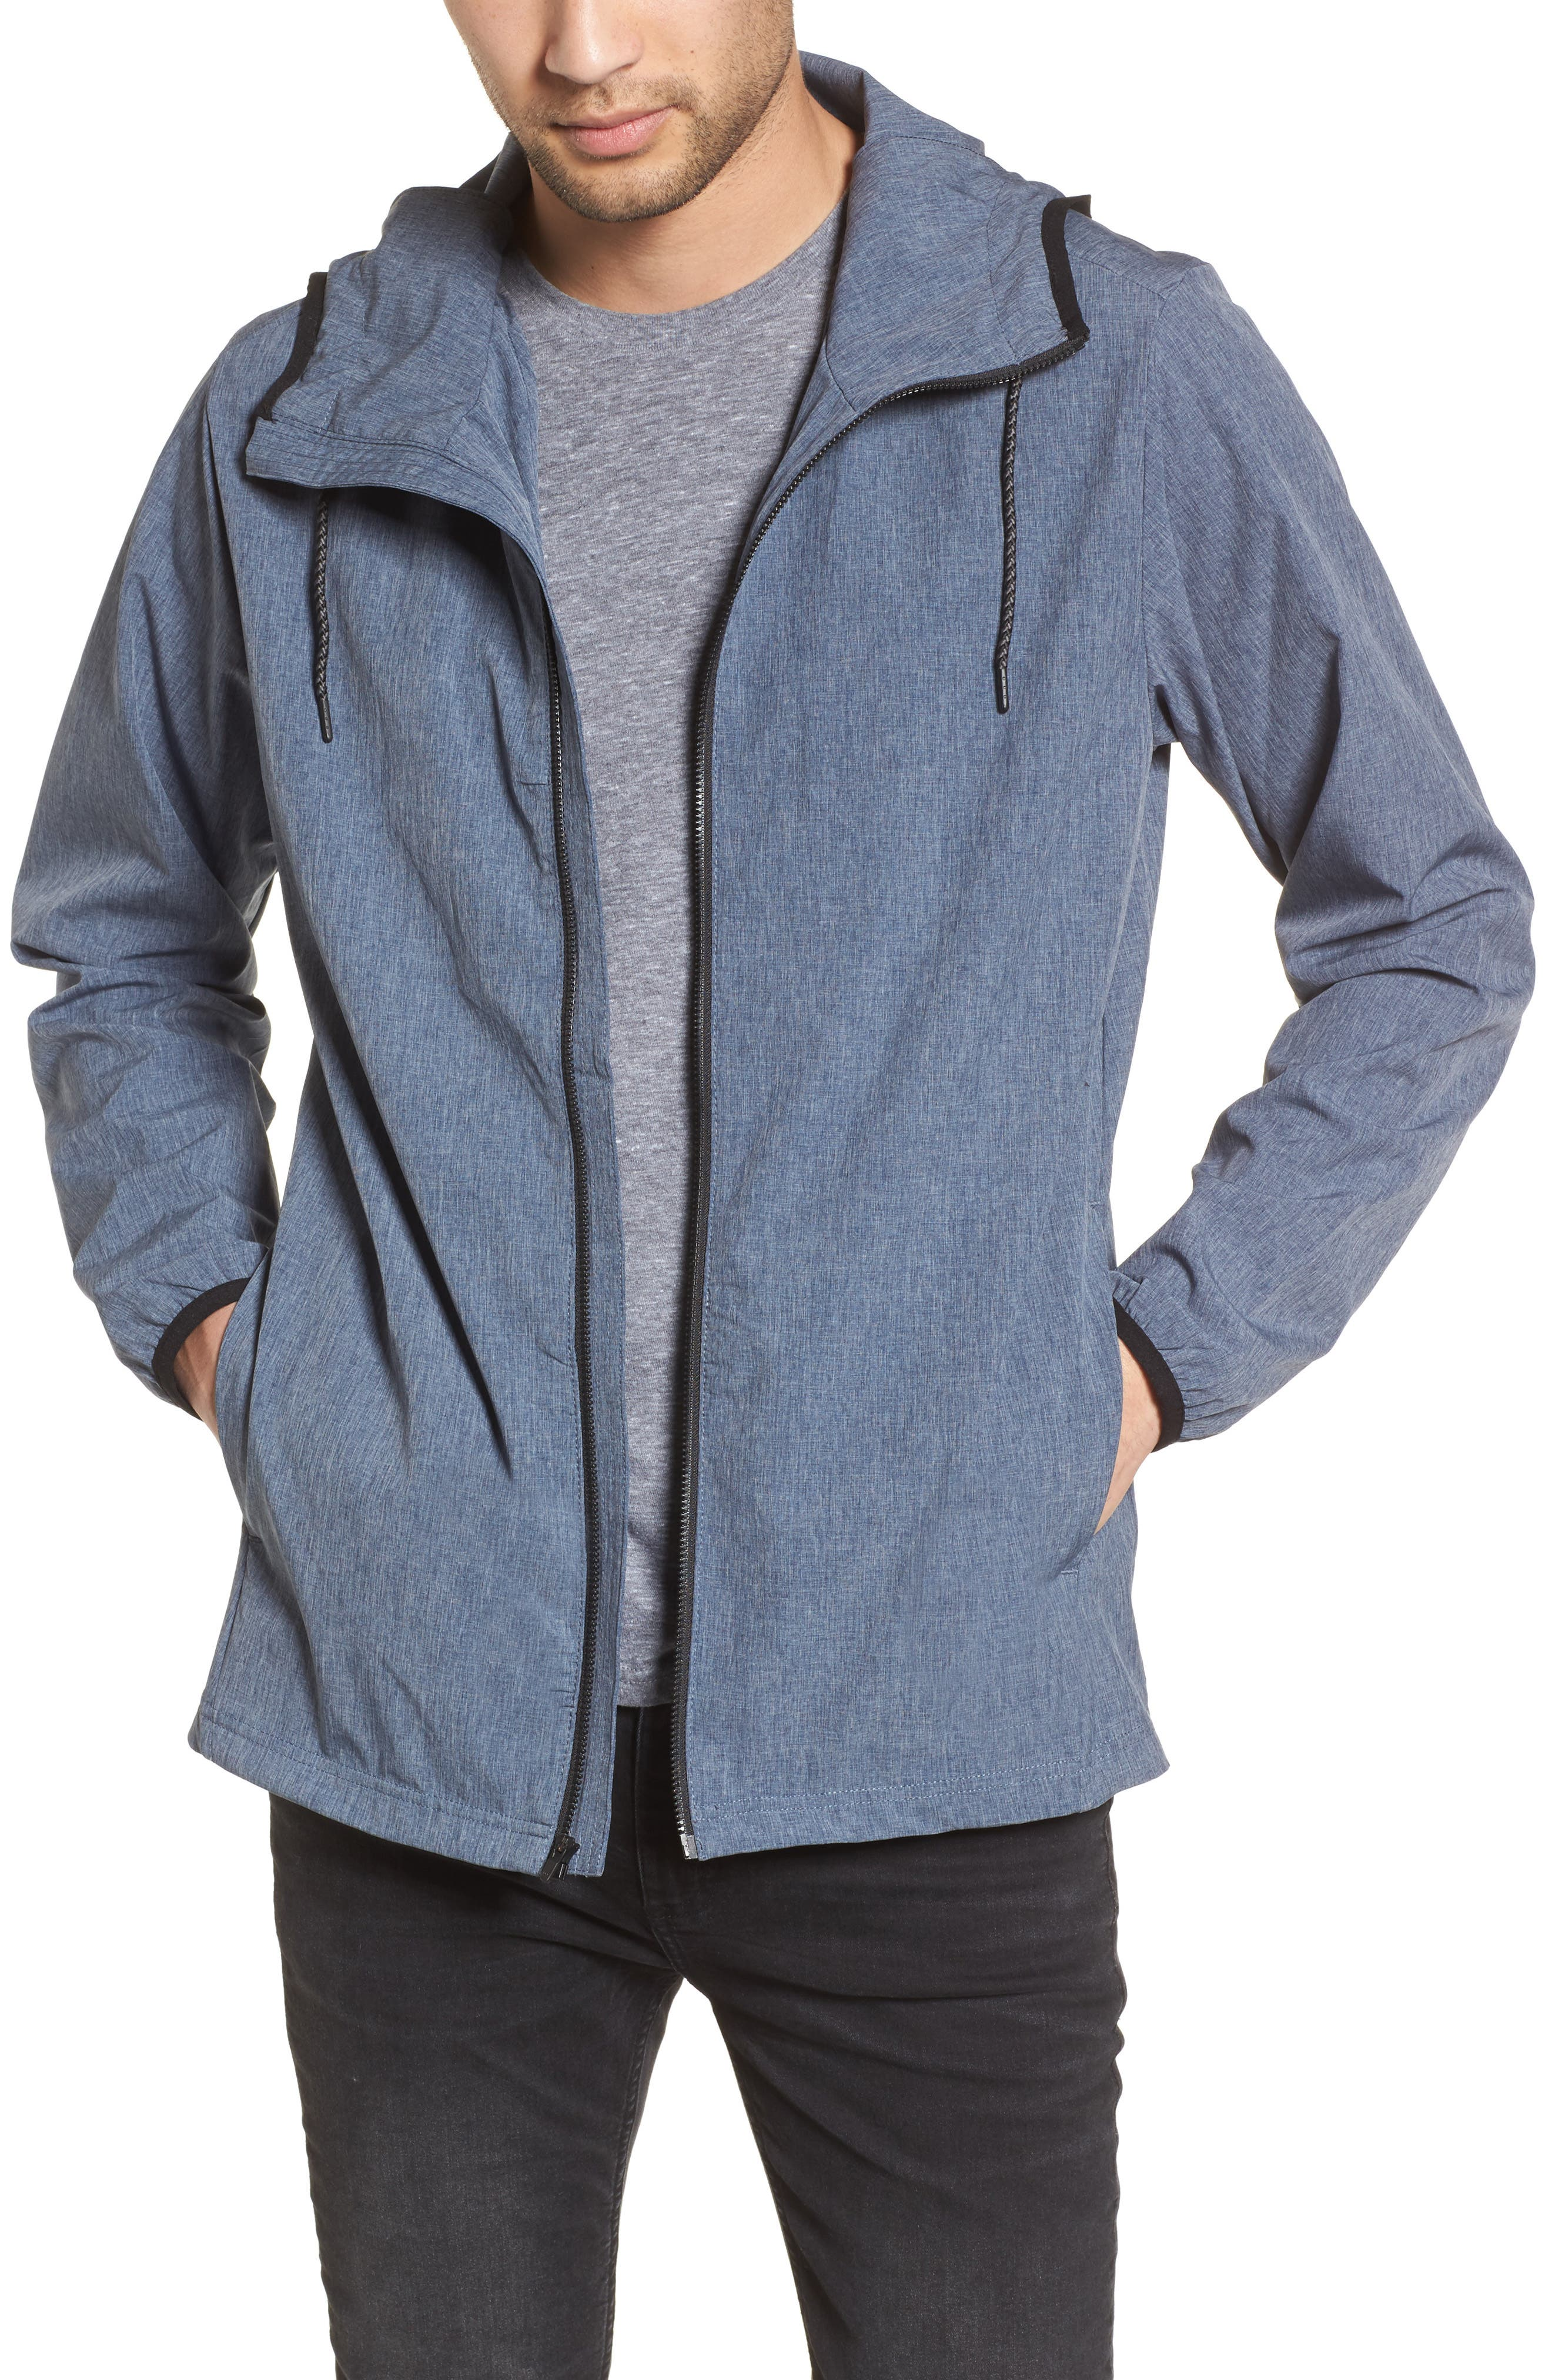 Protect Stretch 2.0 Jacket,                             Main thumbnail 1, color,                             Obsidian